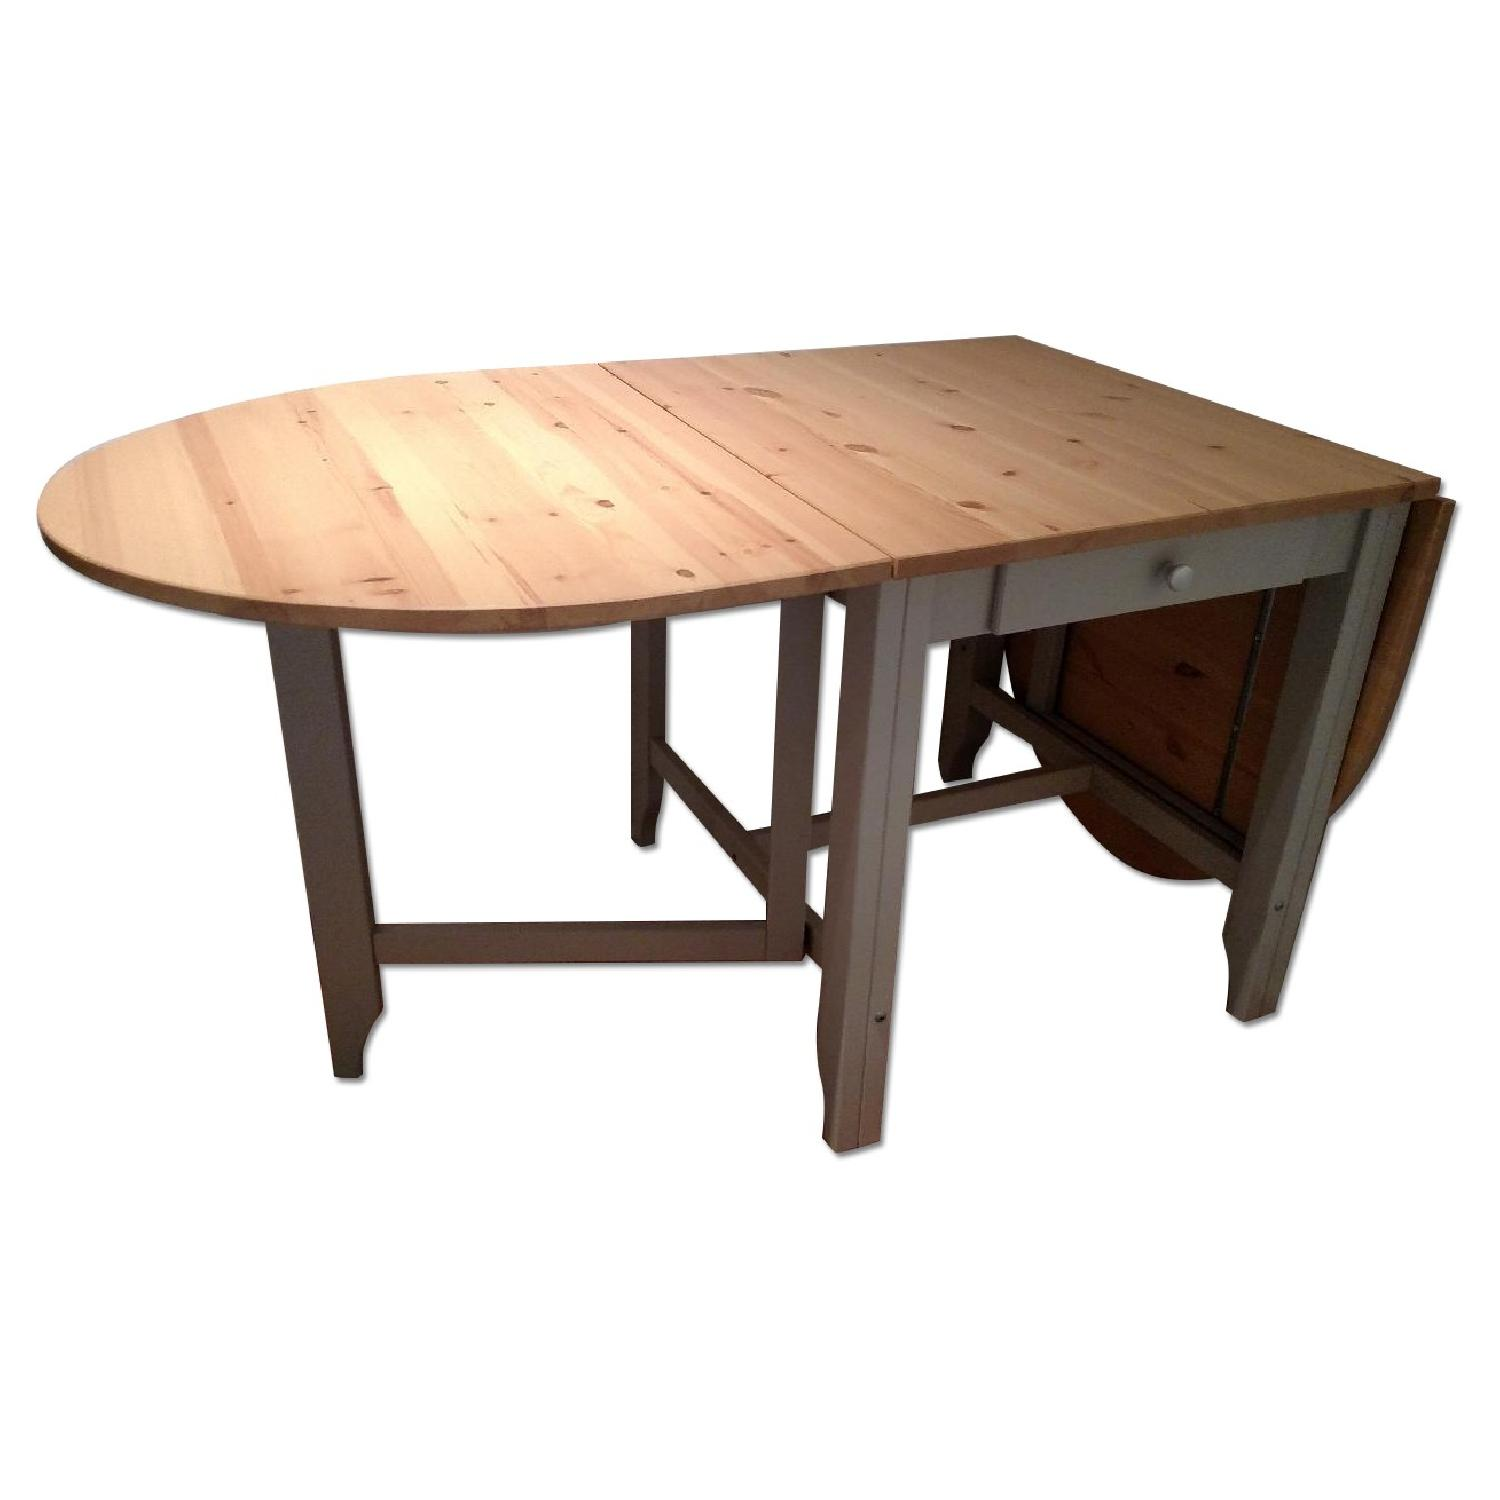 dining table ikea our designs ikea wooden kitchen table hurt